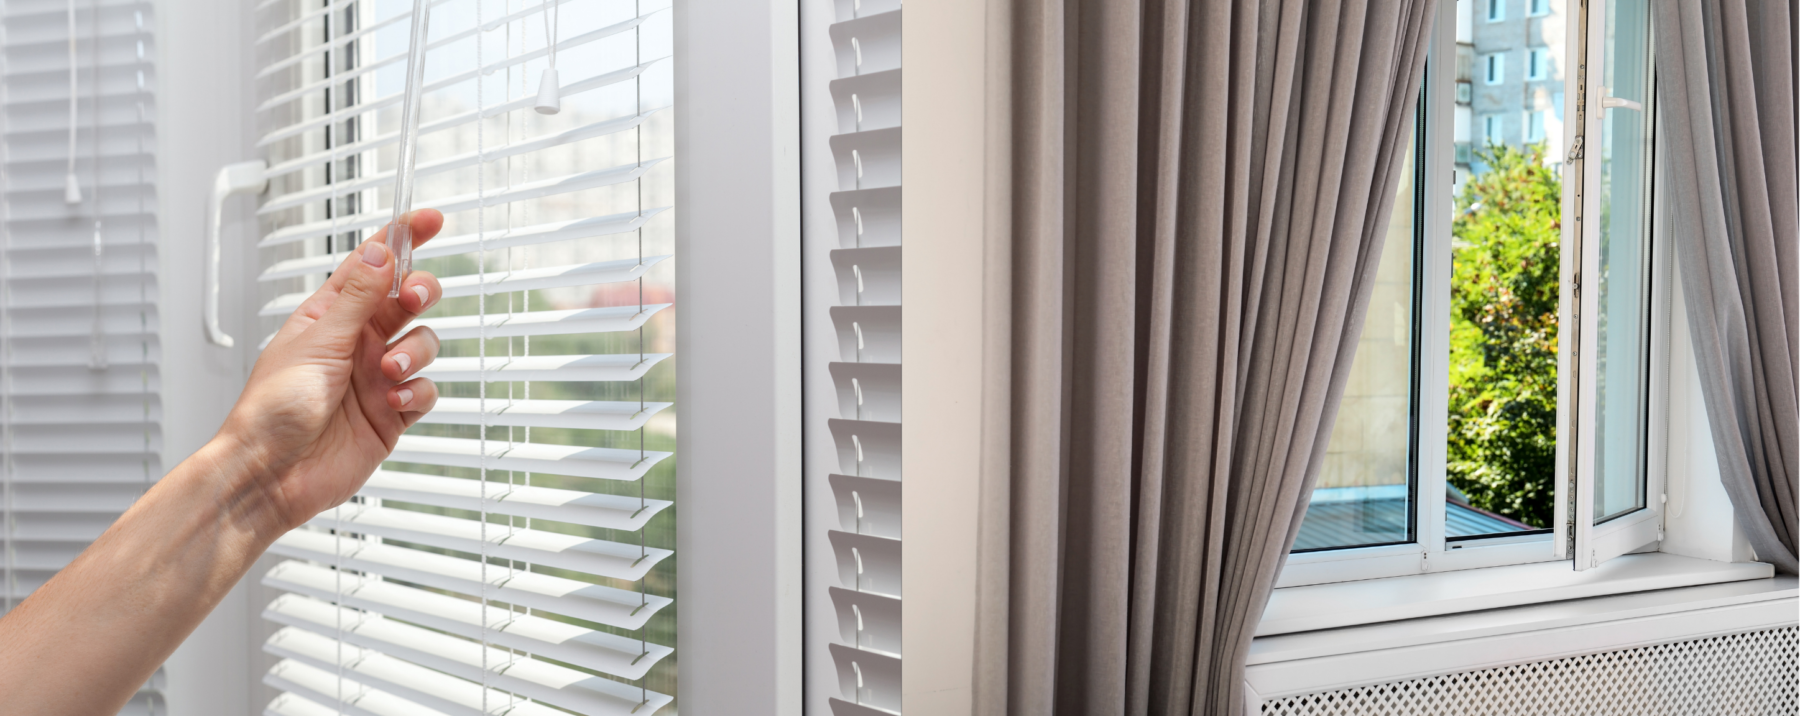 An image of a person opening their blinds and a set of curtains that are open slightly.